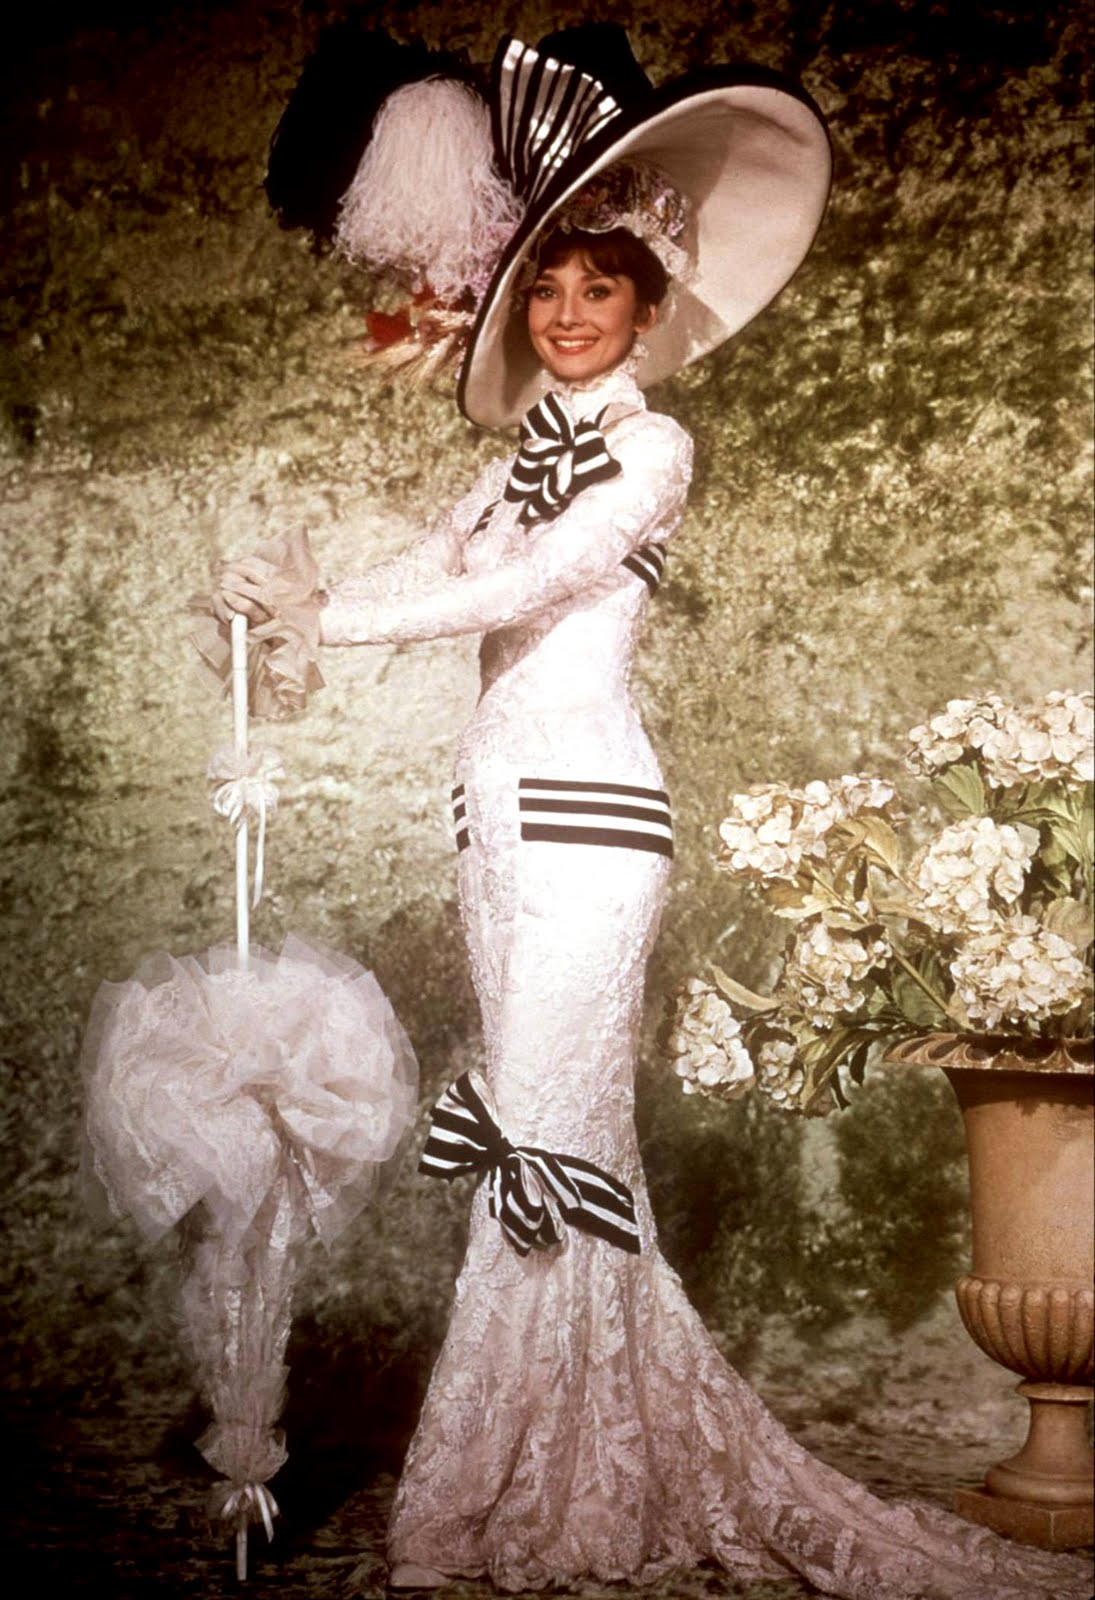 Enchanted Serenity of Period Films: Fashion of My Fair Lady